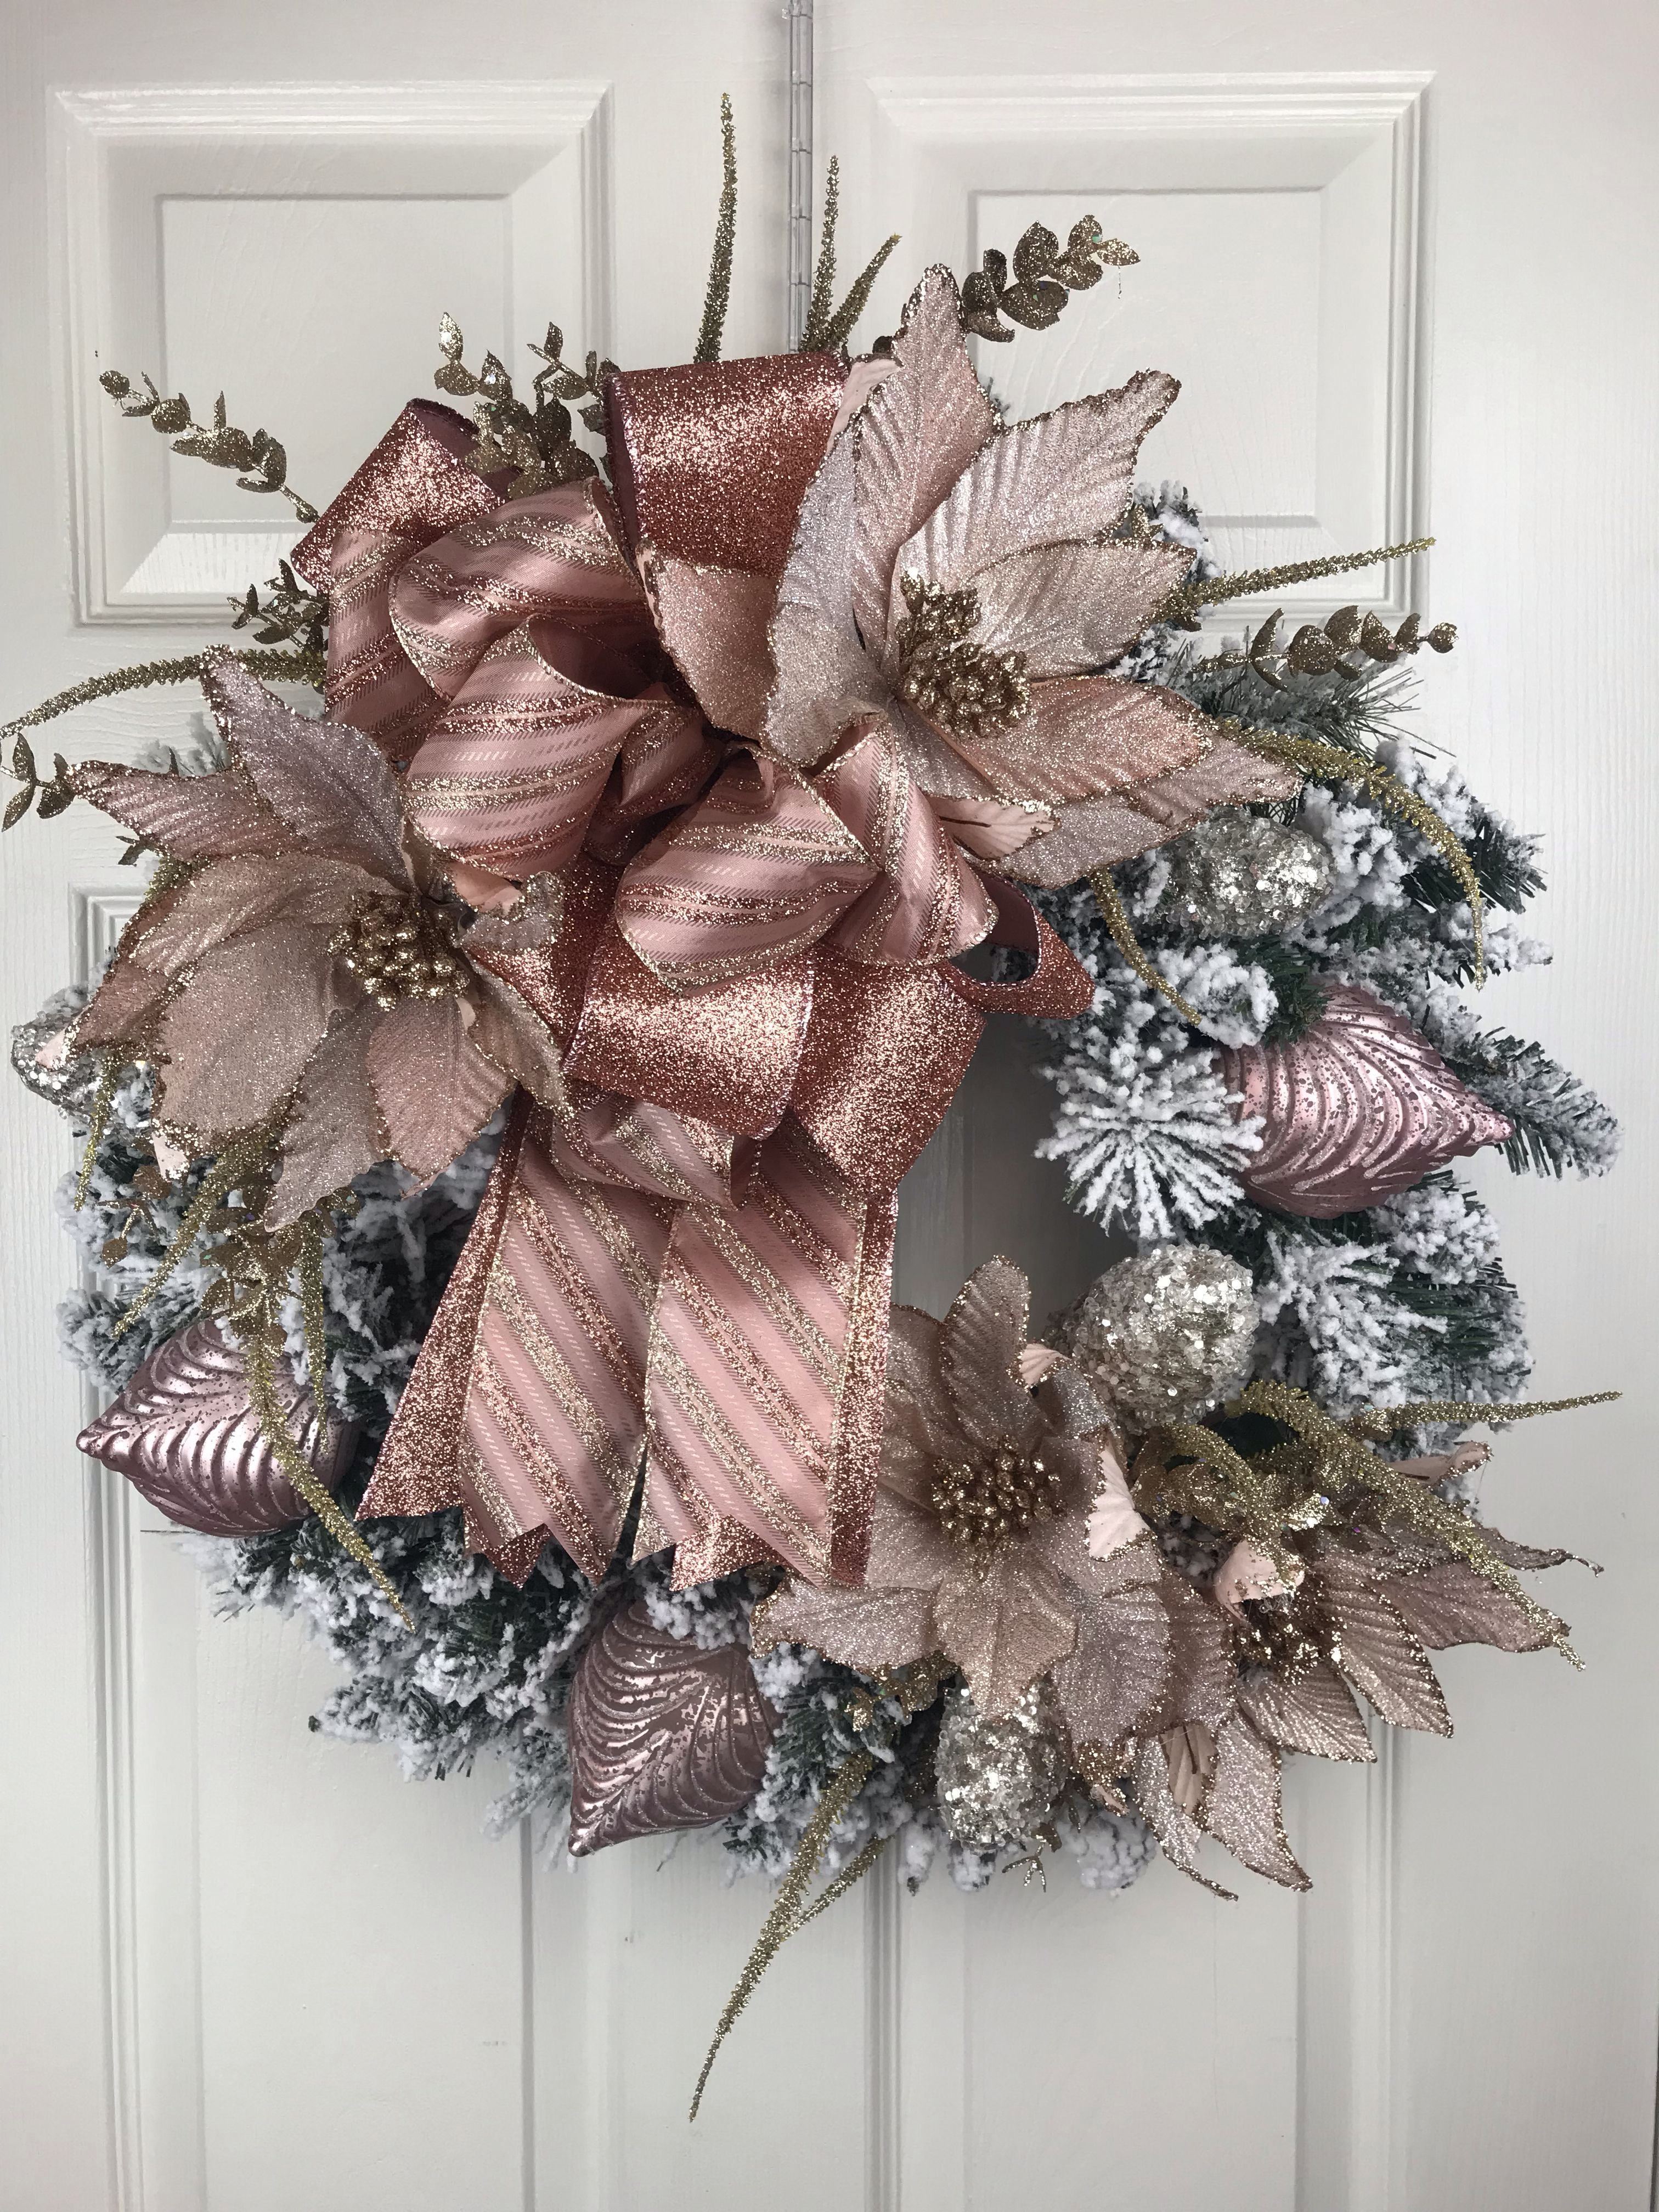 This elegant rose gold Christmas wreath will look amazing